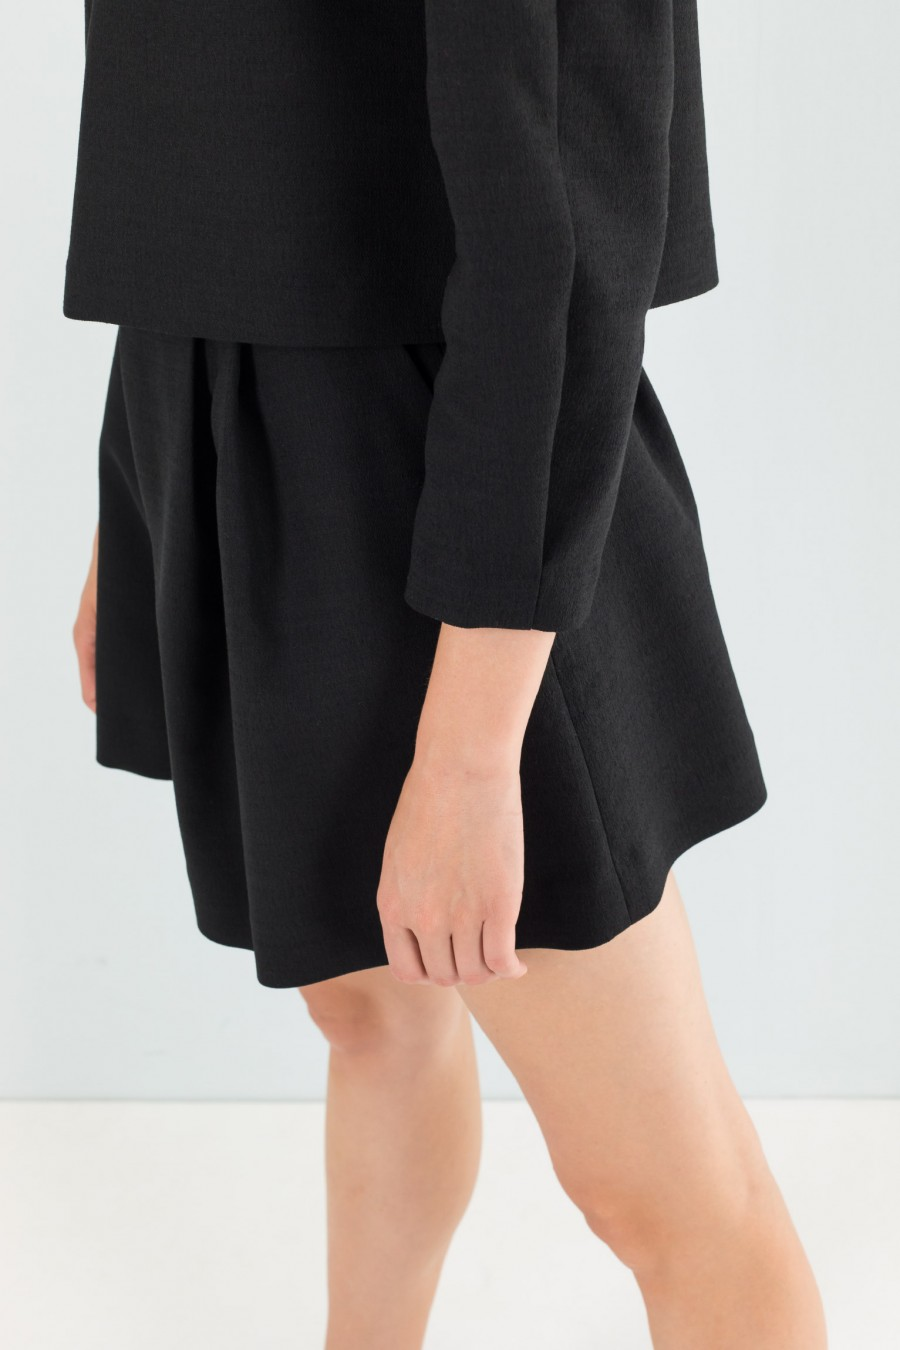 Black top and shorts culottes co-ord